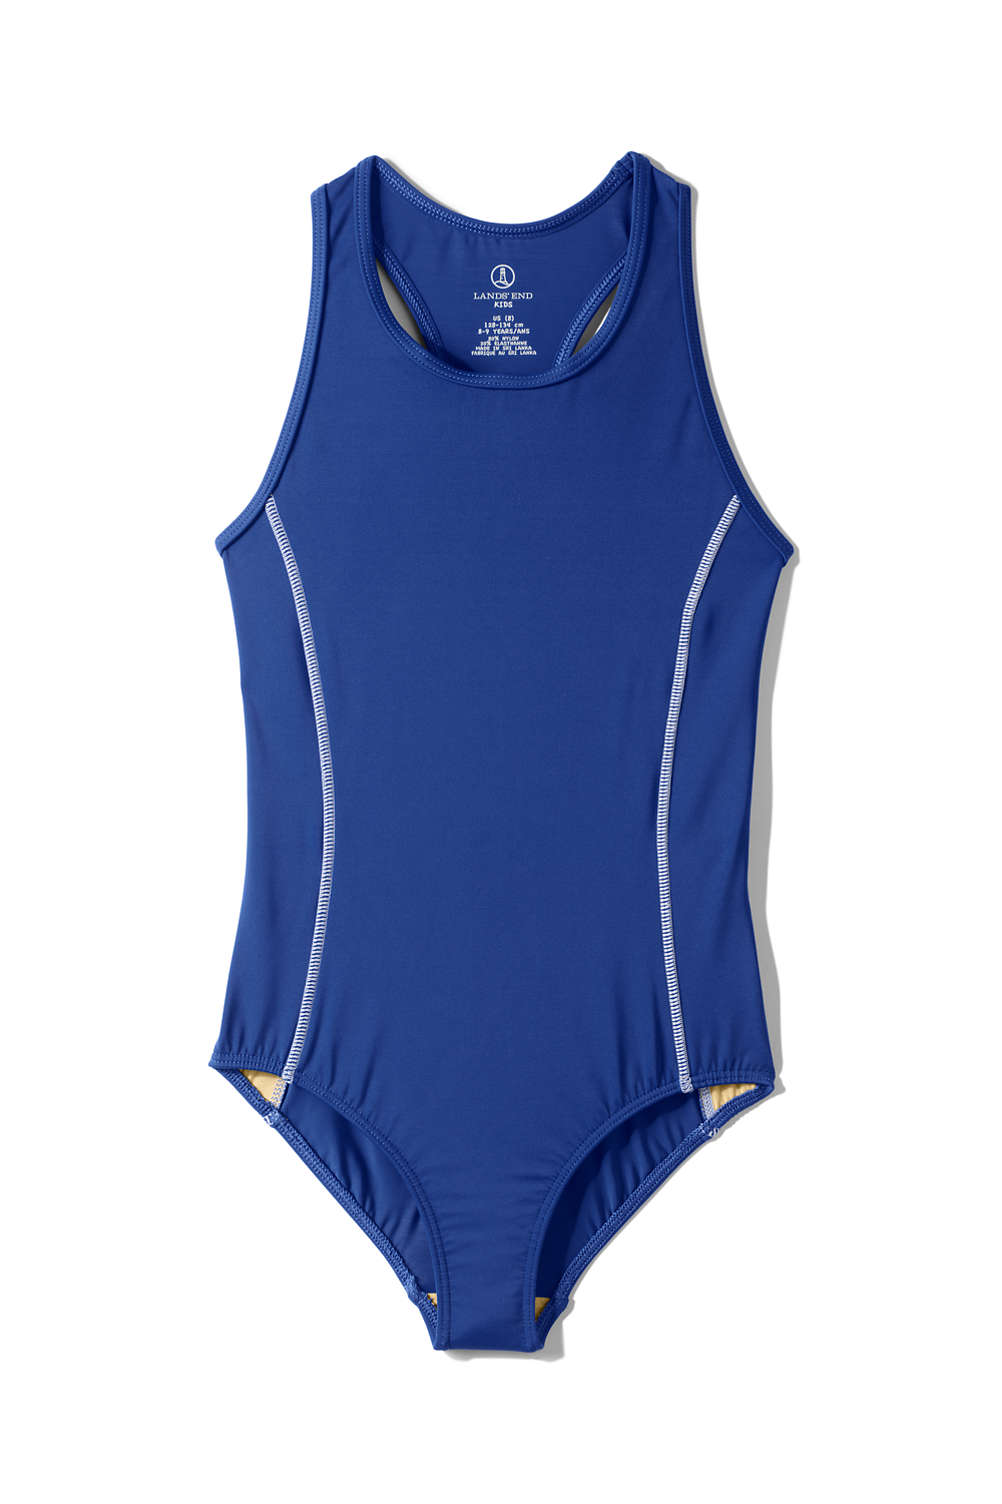 d089e874f2 Girls Tank Swimsuit from Lands' End